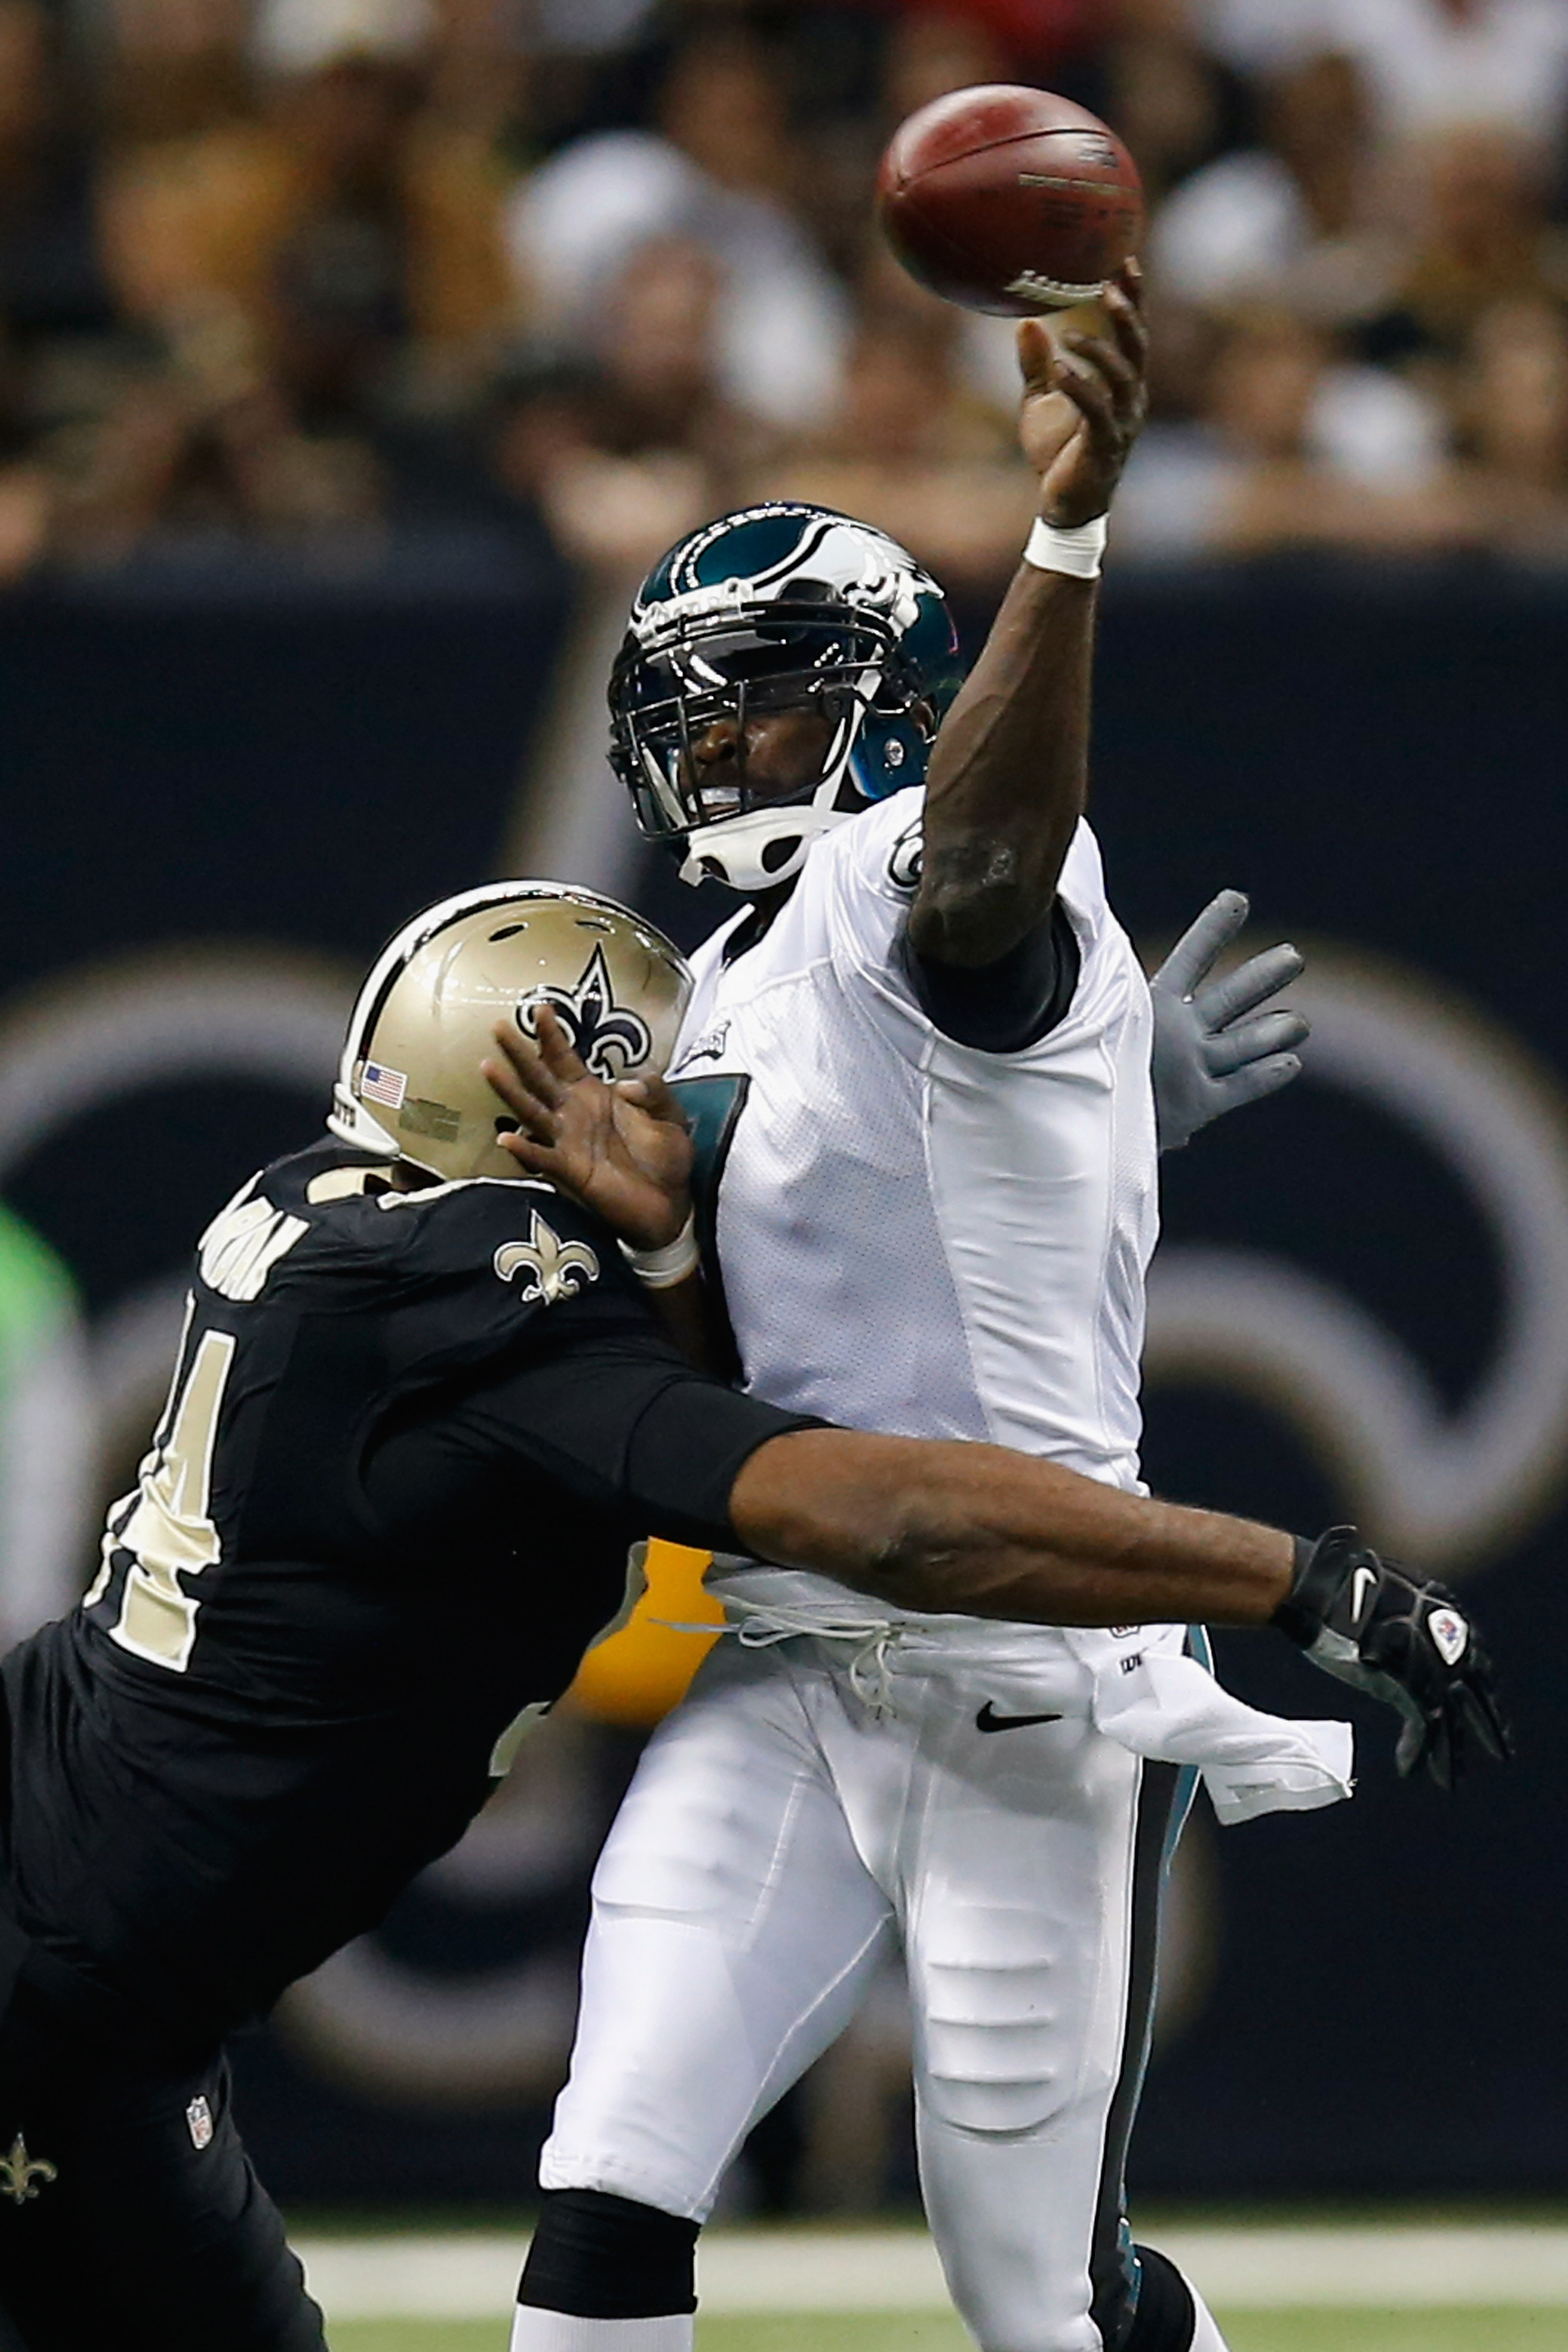 This is an example of what Vick has been feeling all night.